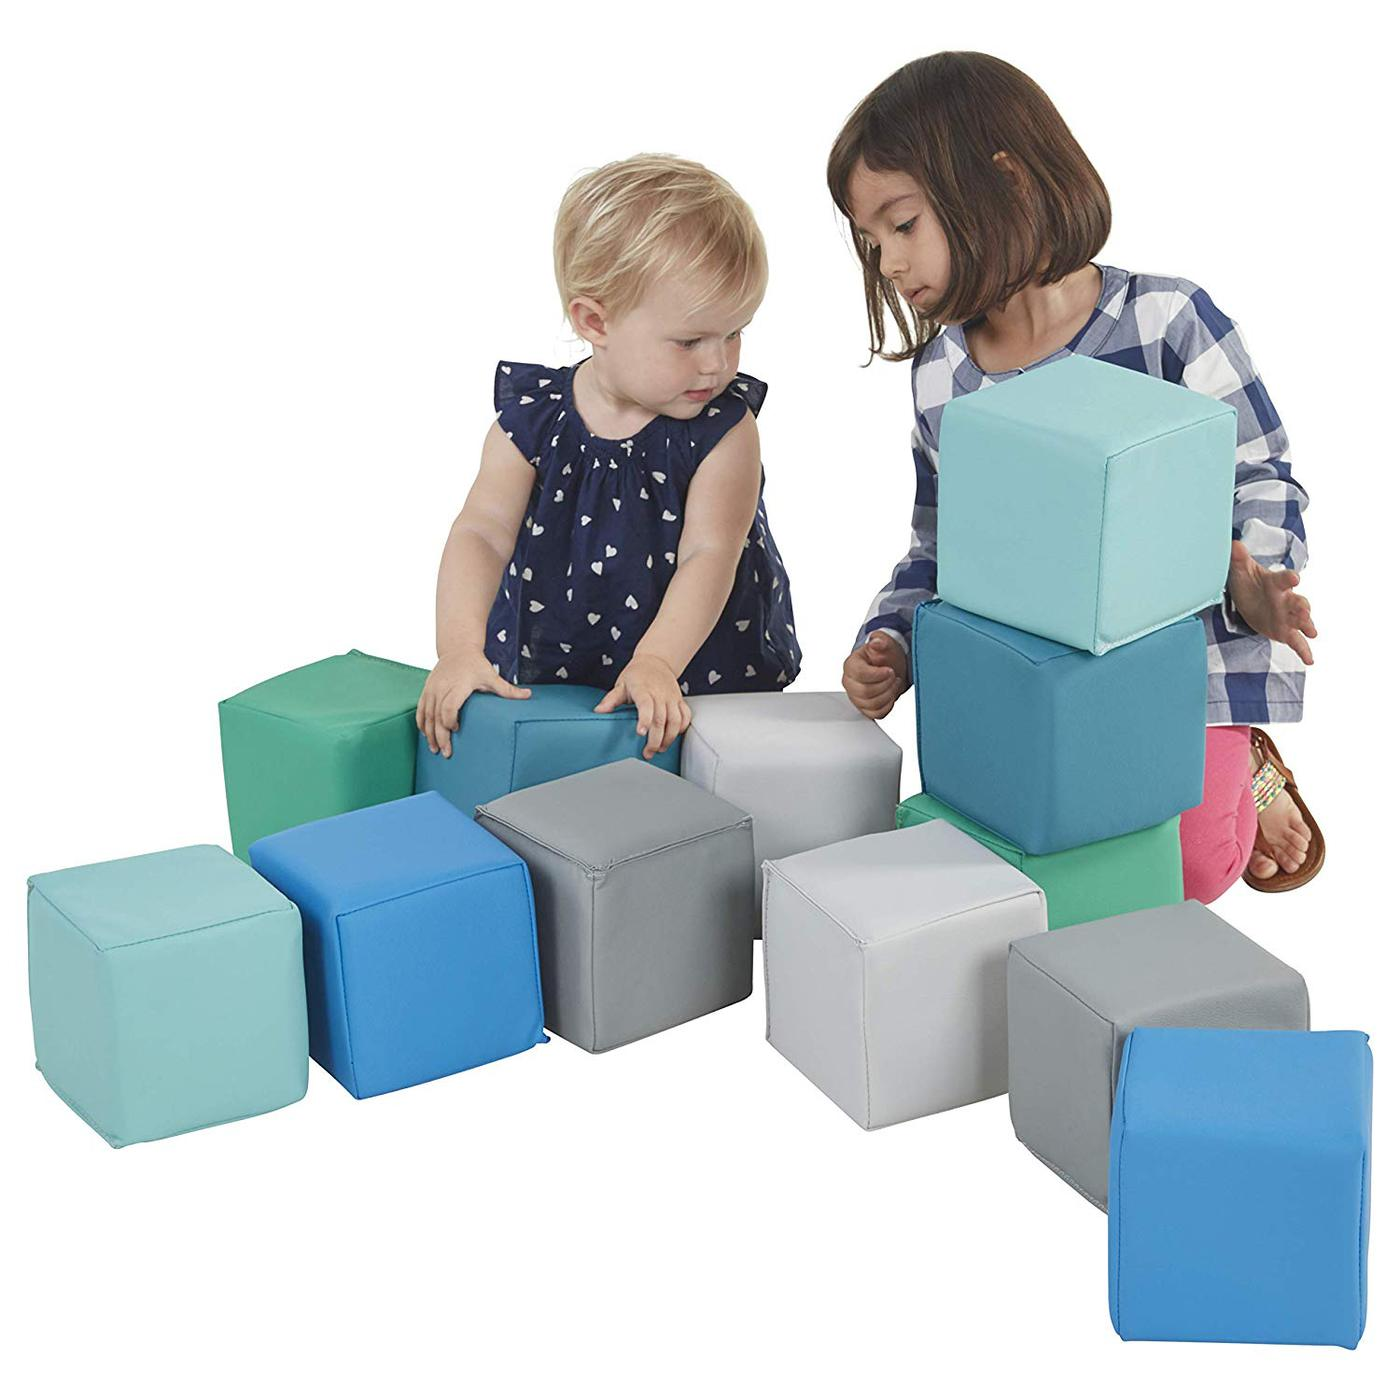 photo of two little girls playing with soft 1ft building cubes